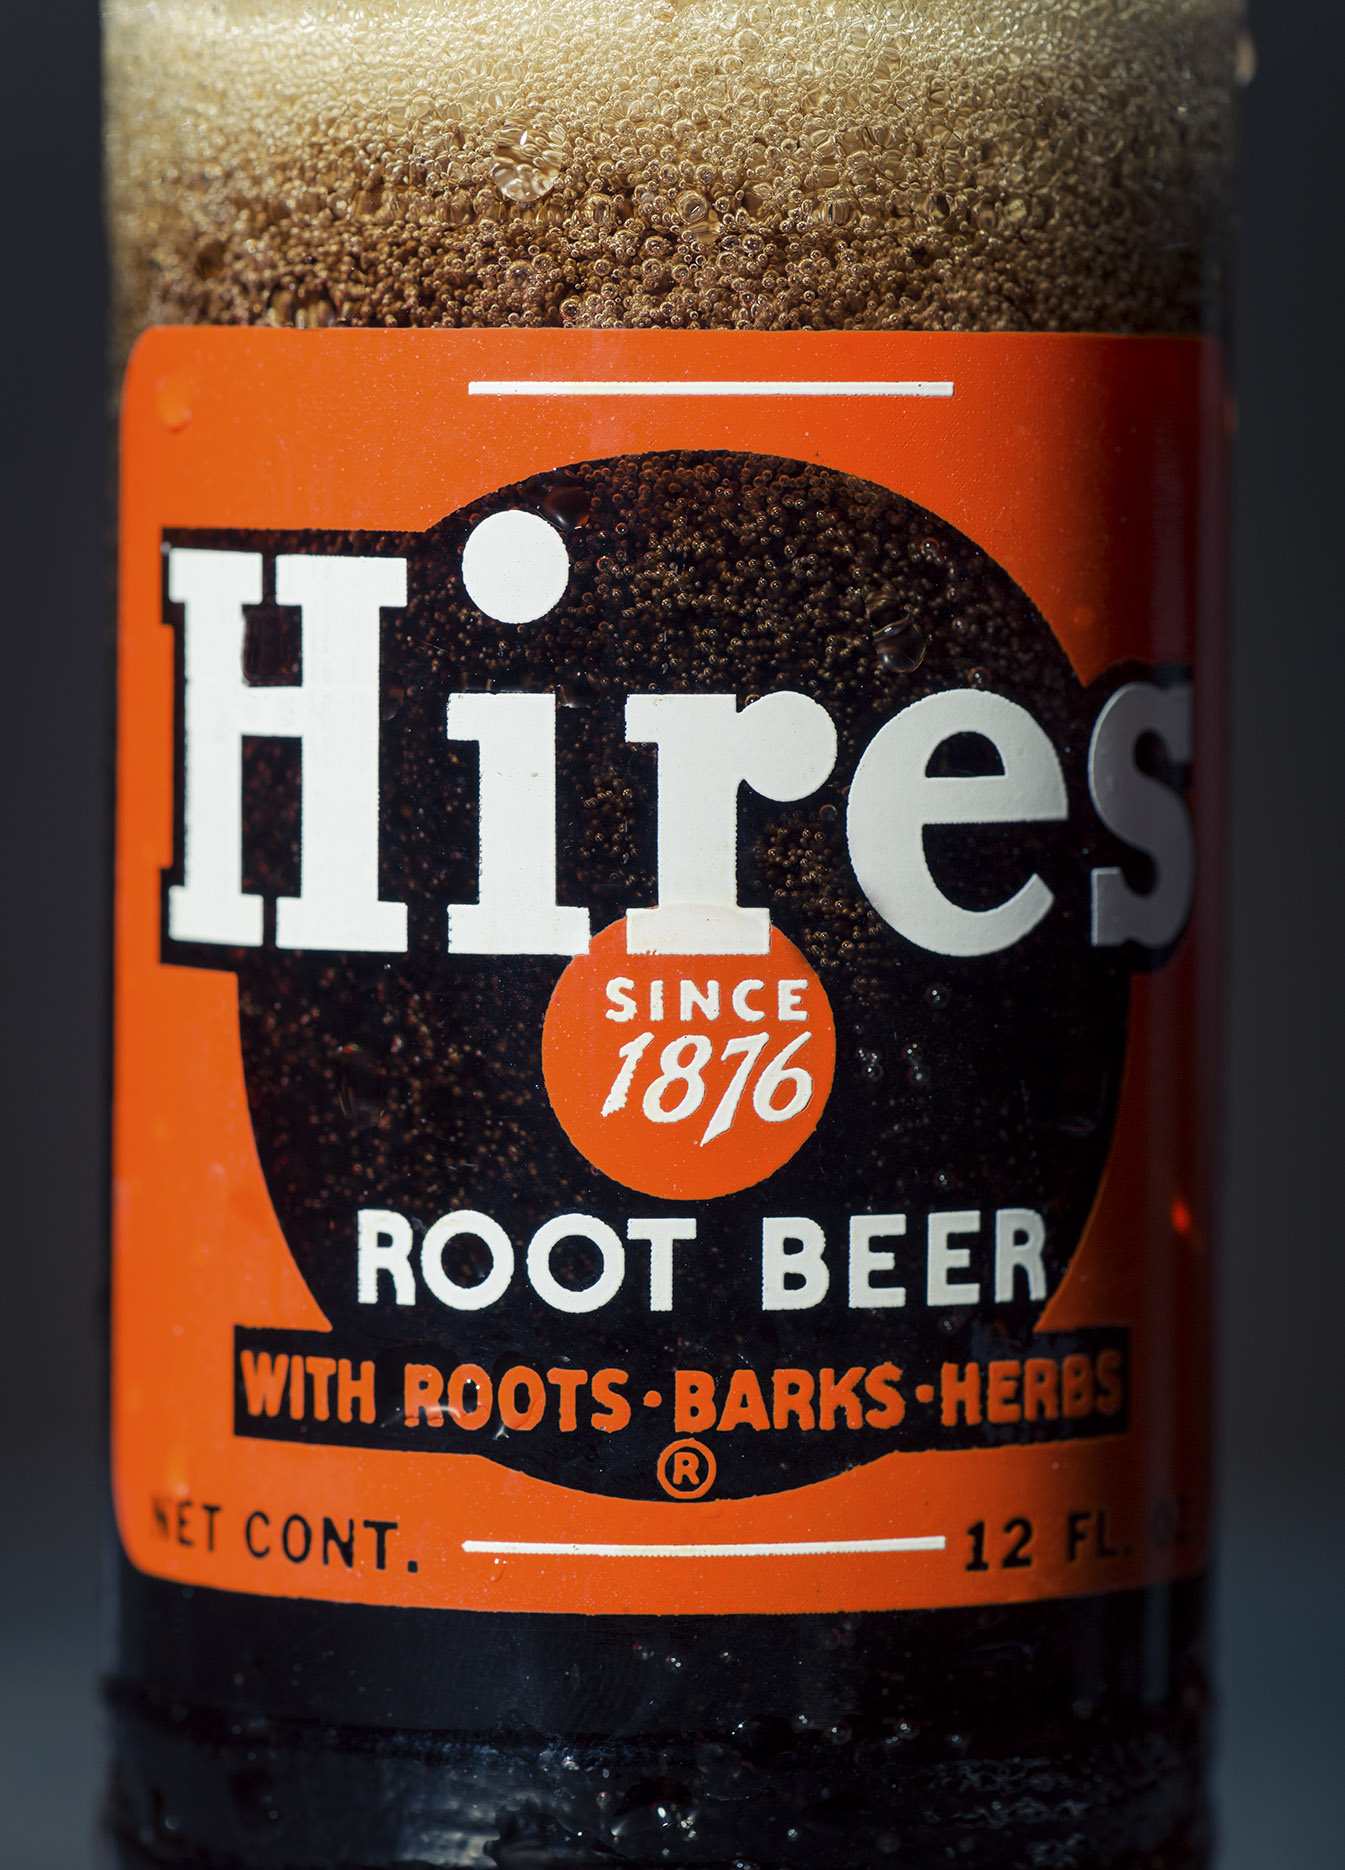 jeff-green-hires-rootbeer